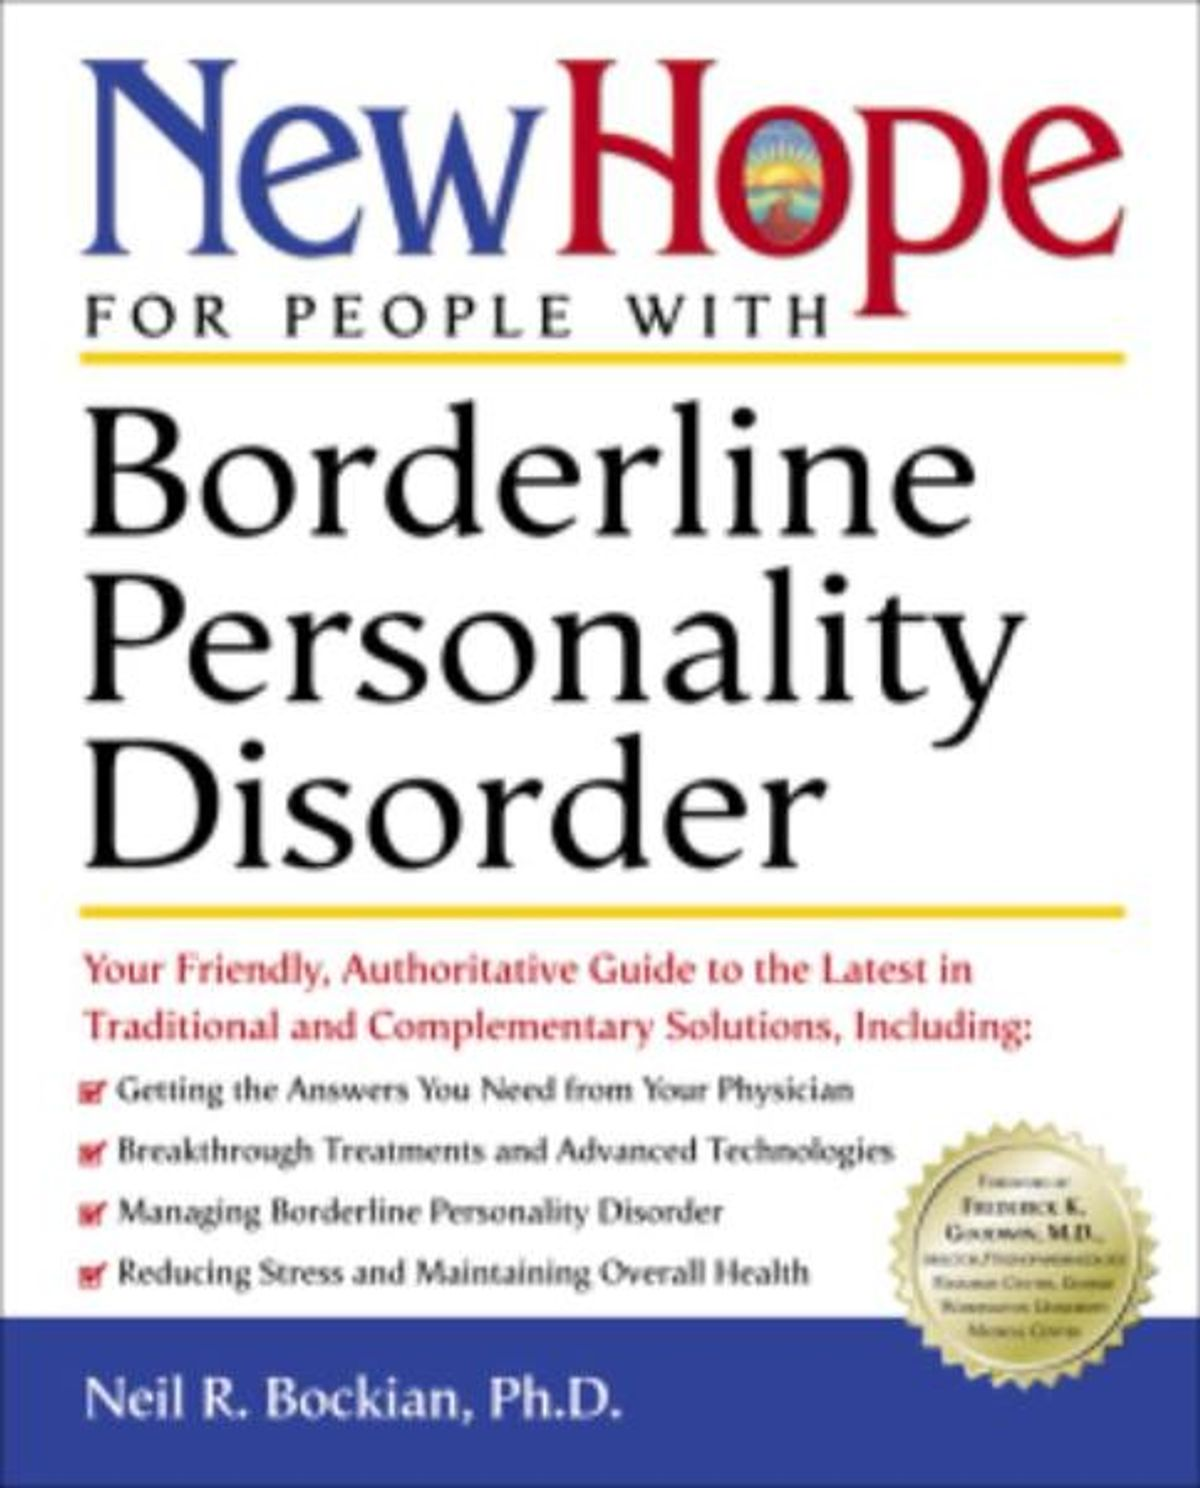 New Hope for People with Borderline Personality Disorder - eBook